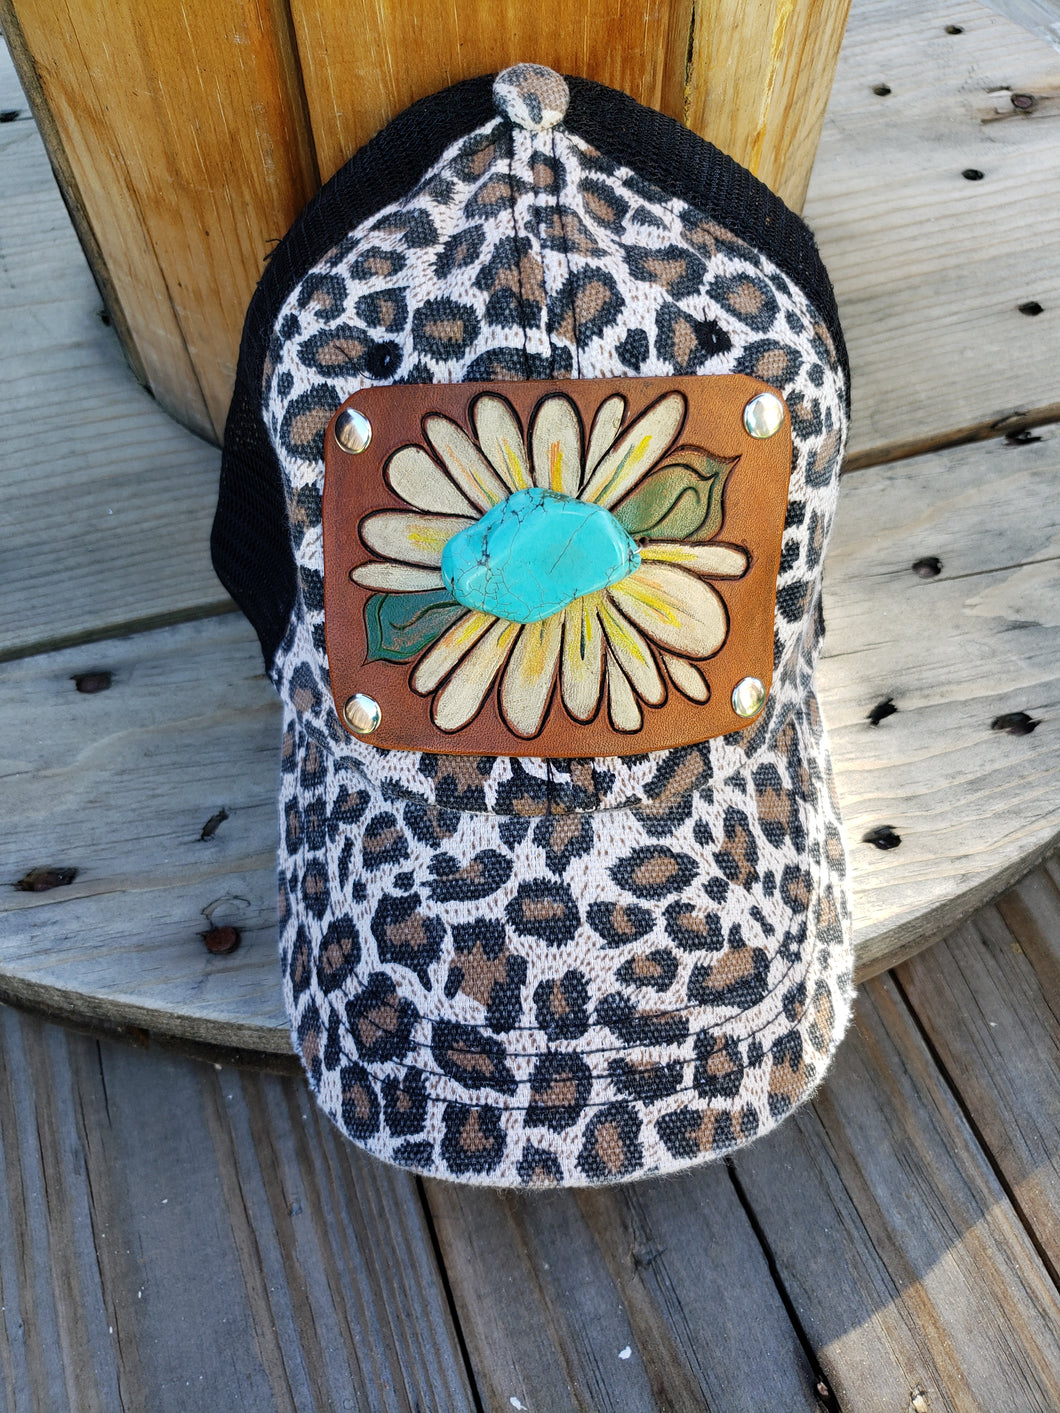 Daisy tooled leather hat